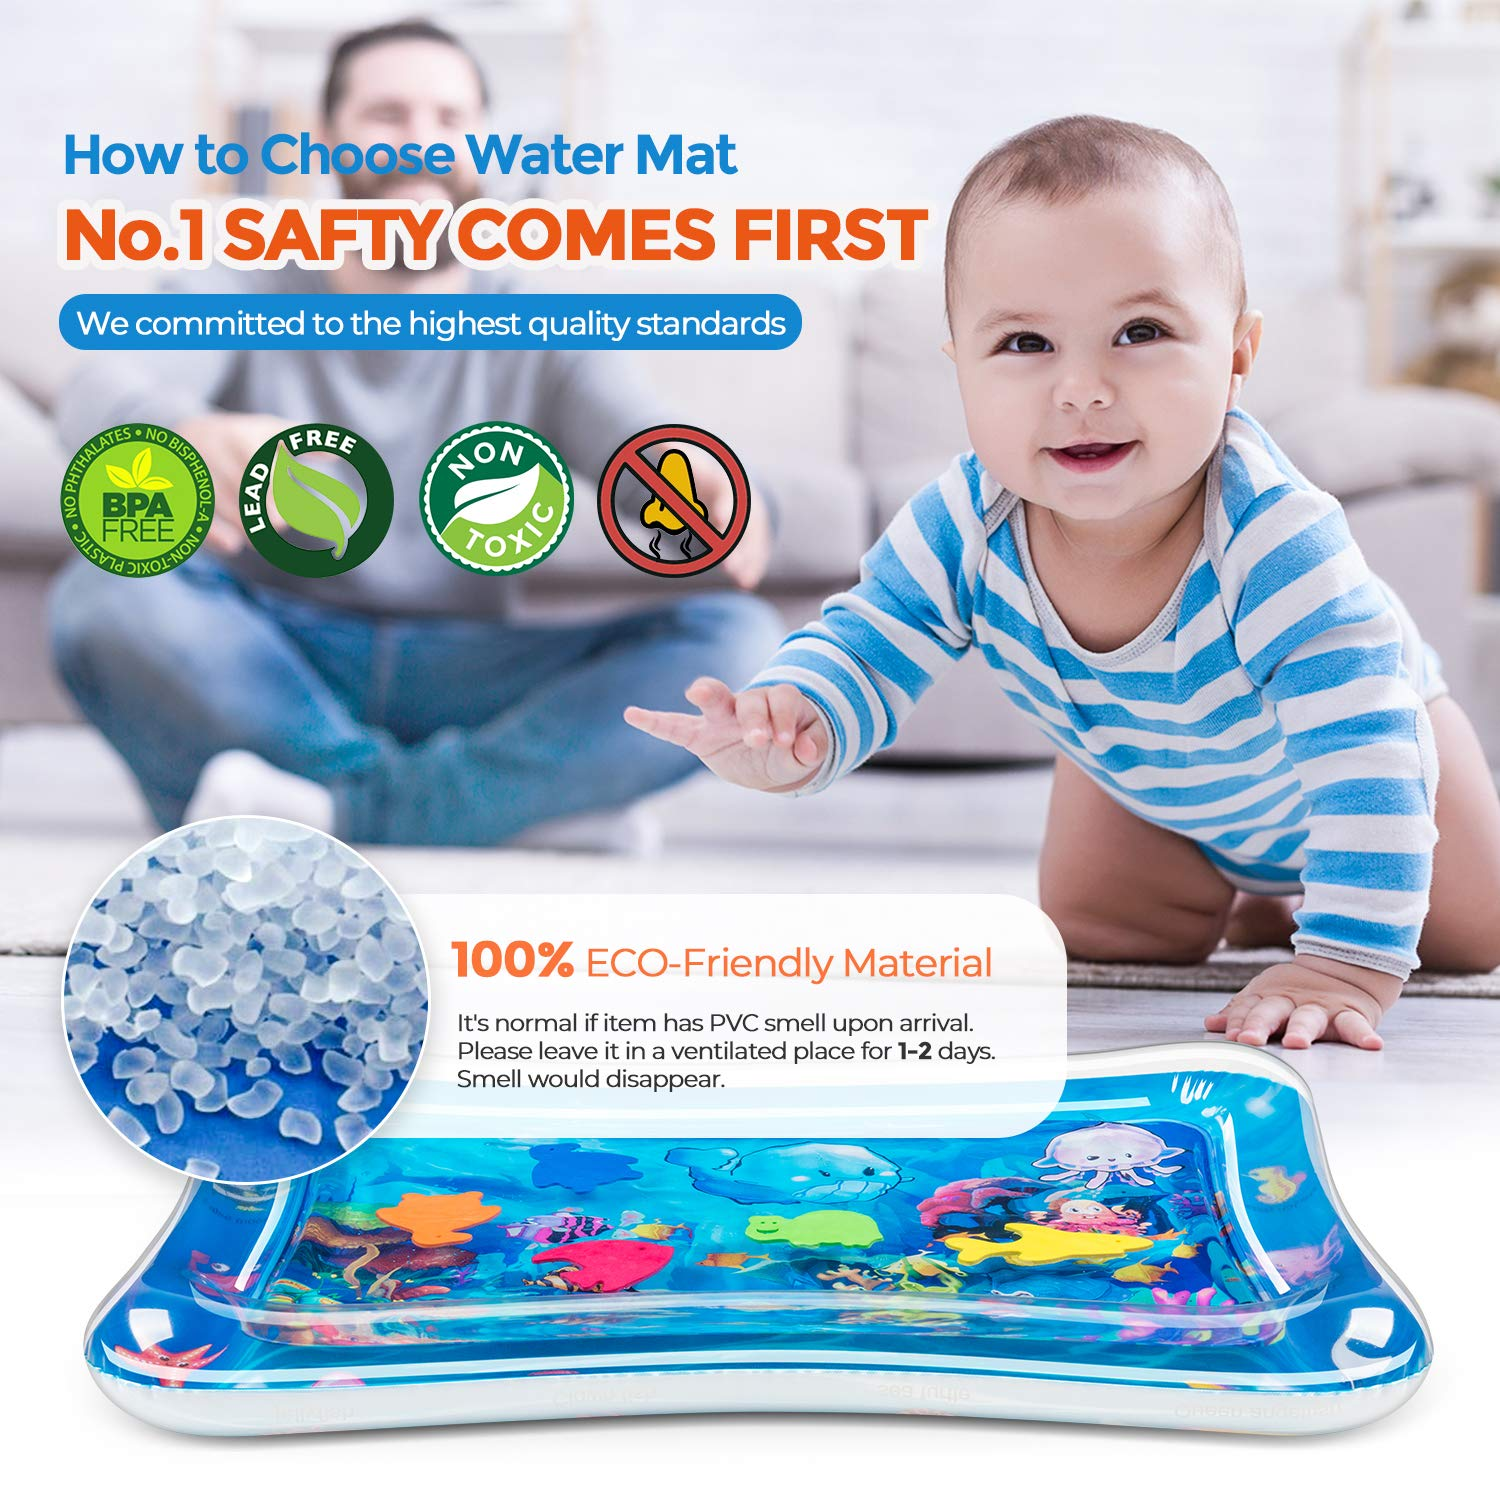 Tummy Time Baby Water Mat Inflatable Baby Play Activity Center for 3 6 9 Months